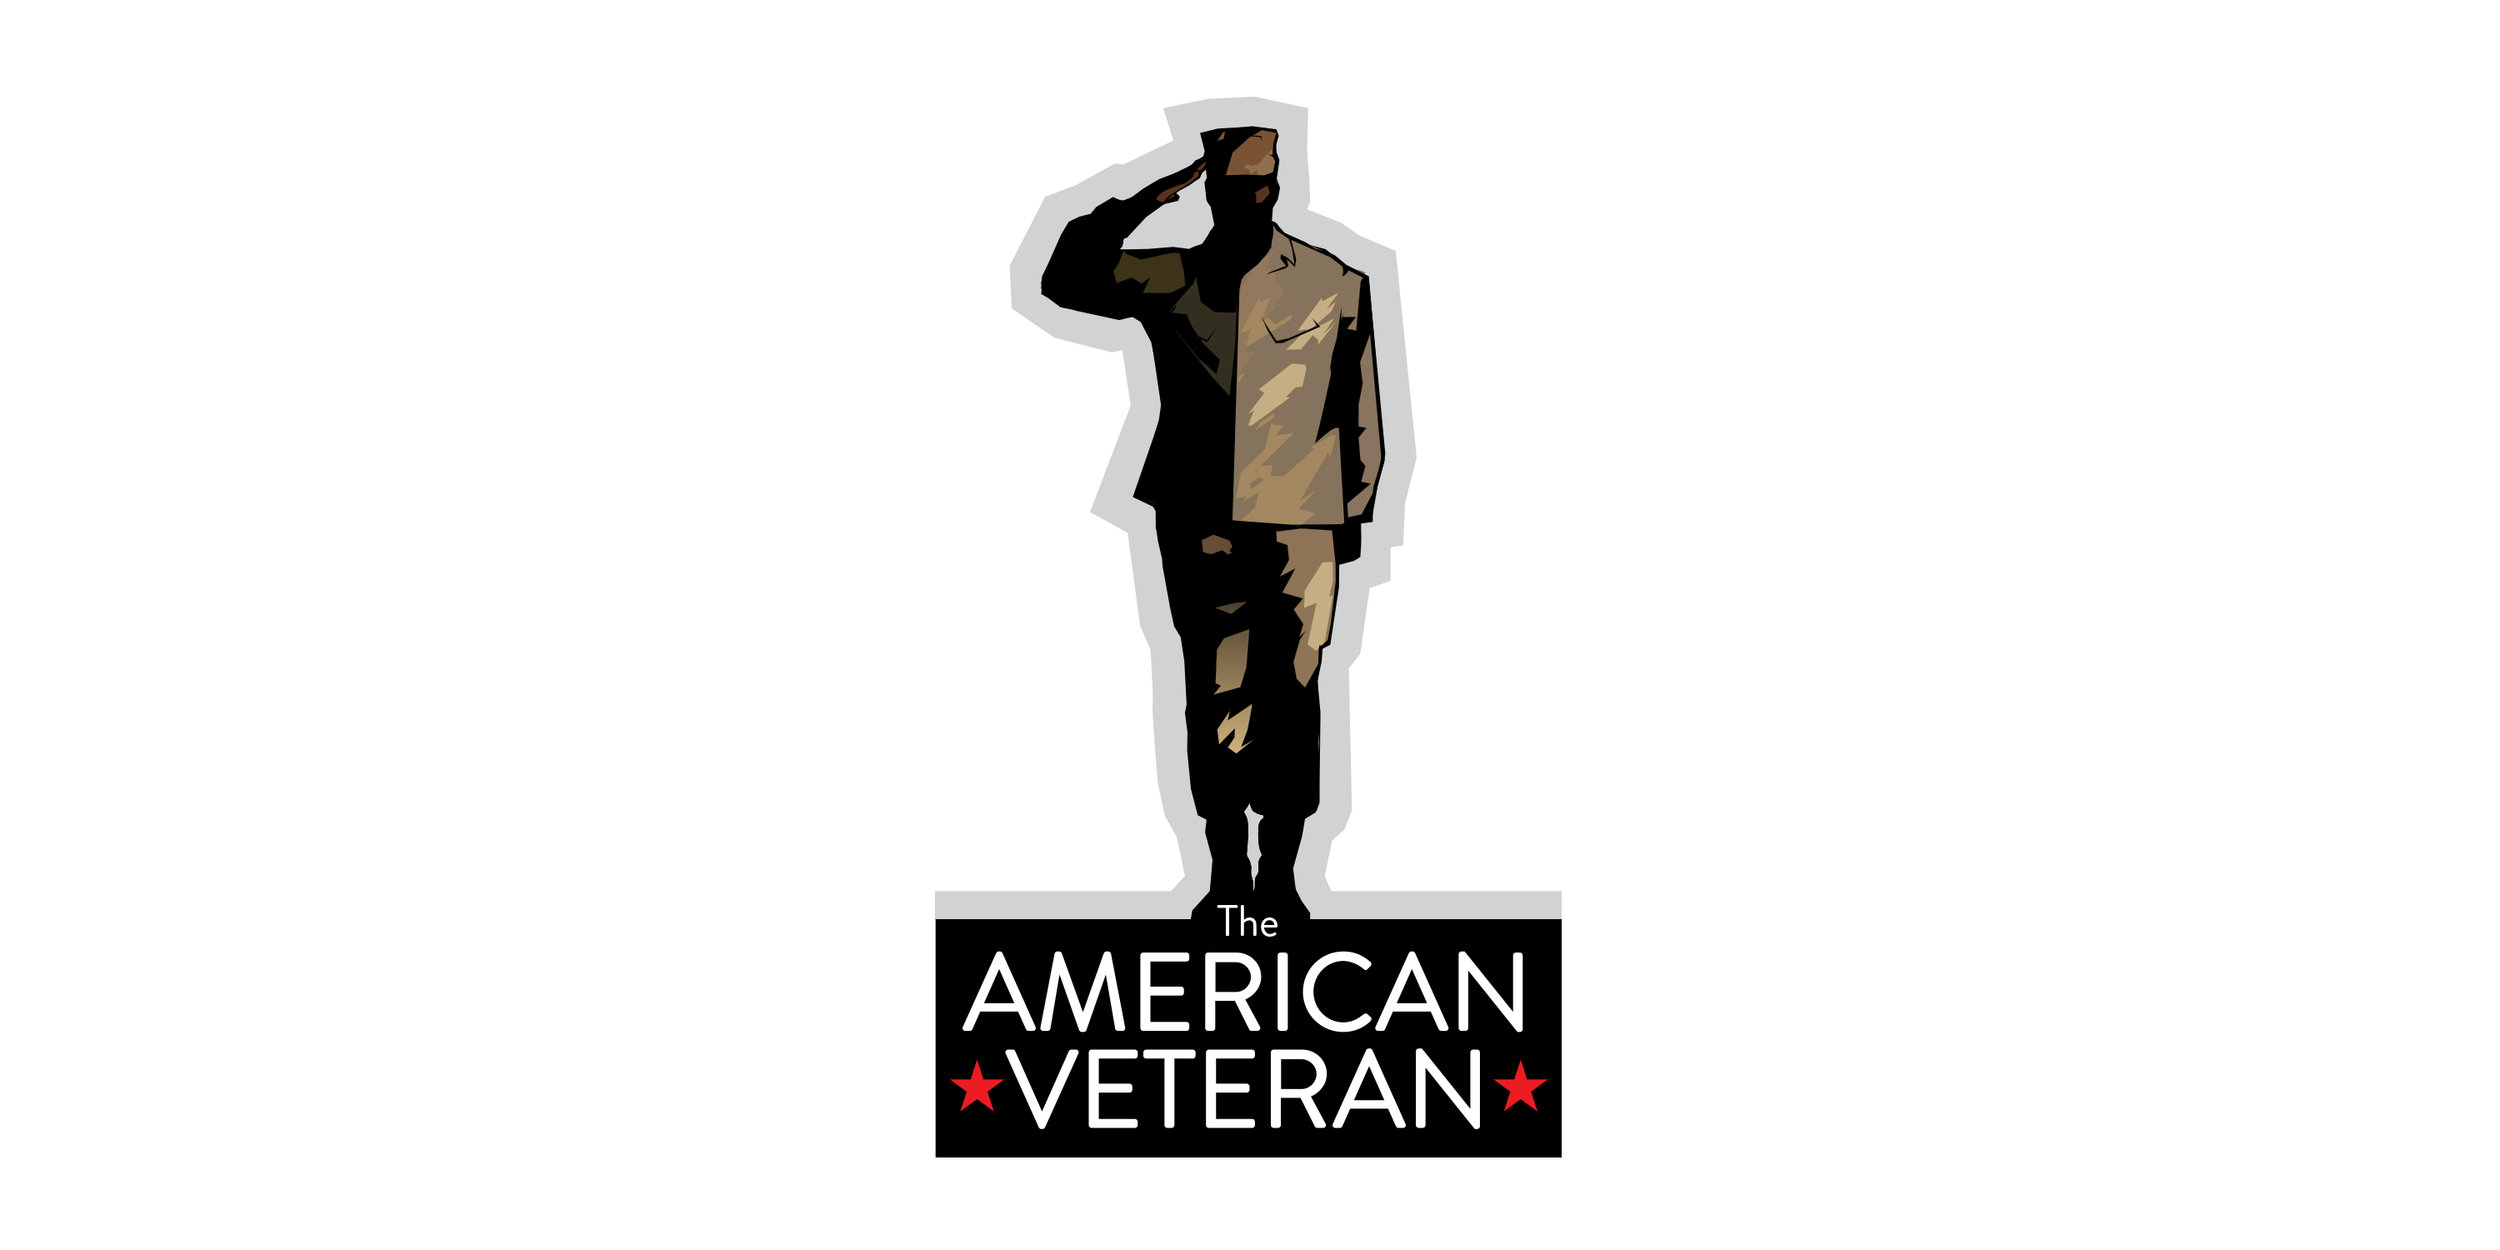 Web_Samples_AmericanVet_Logos_2.jpg